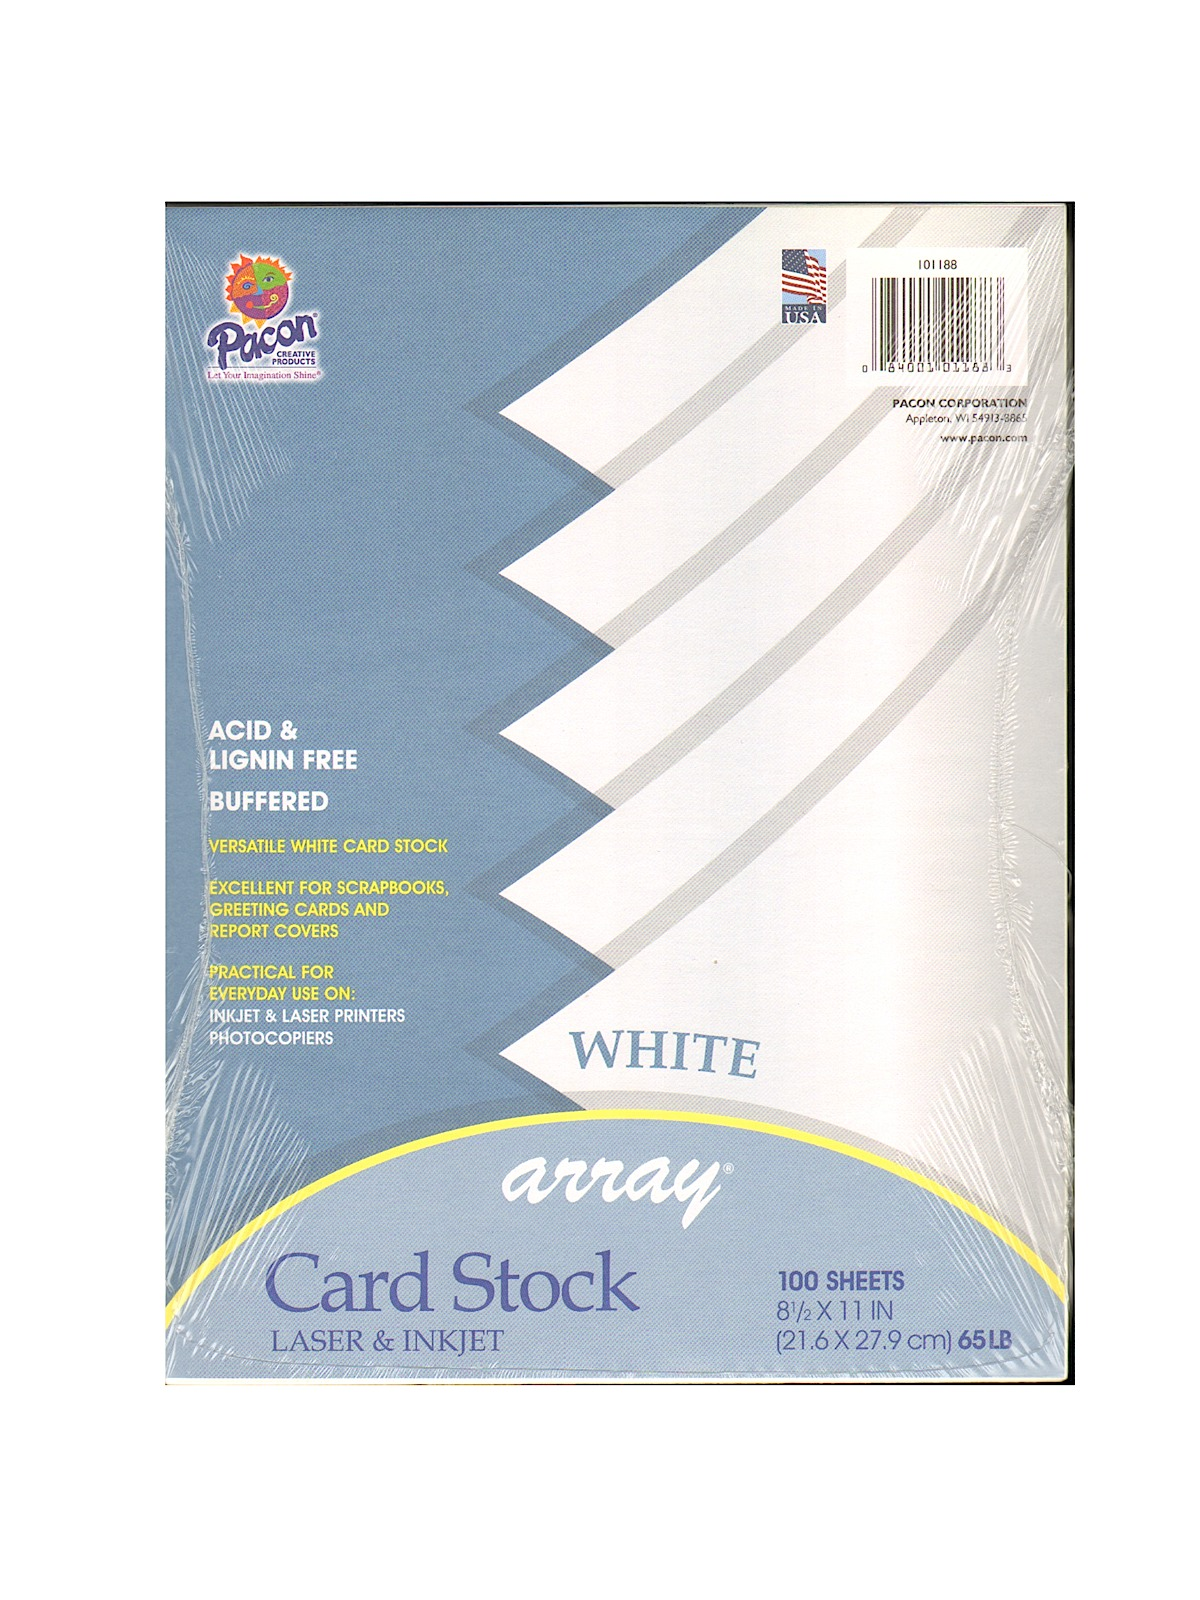 Array Card Stock white 8 1 2 in. x 11 in. pack of 100